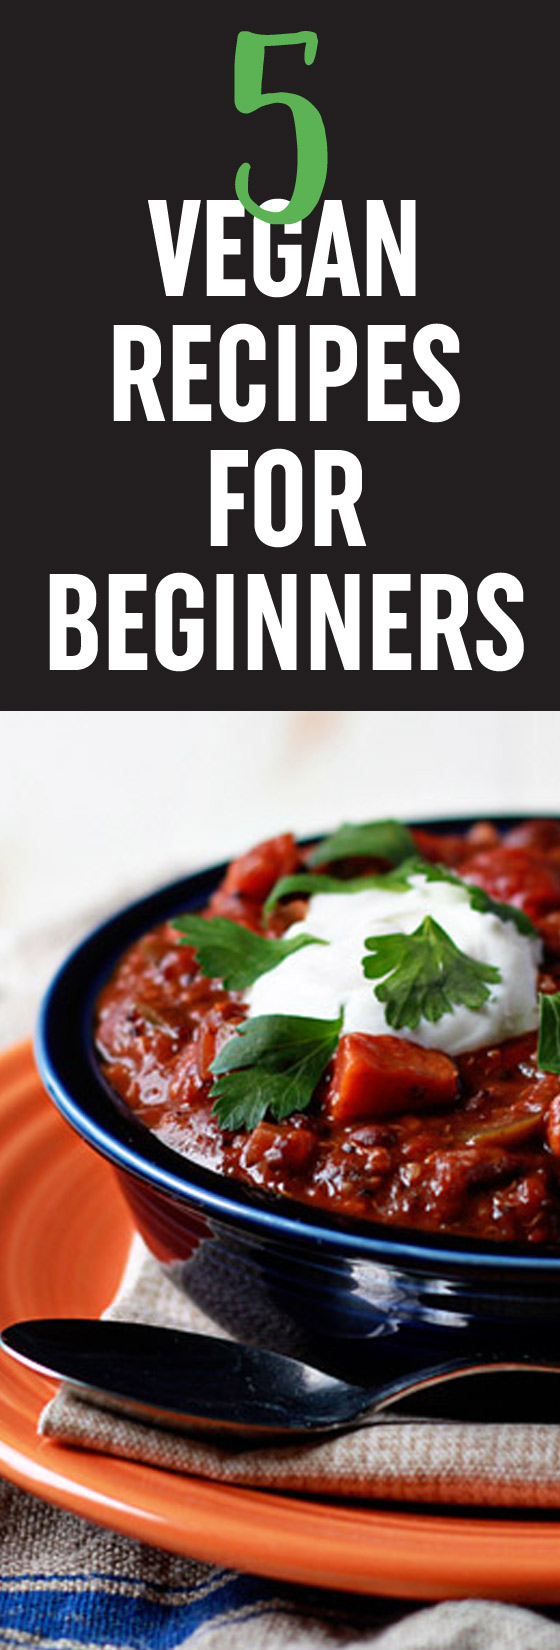 5 Vegan Recipes for Beginners!